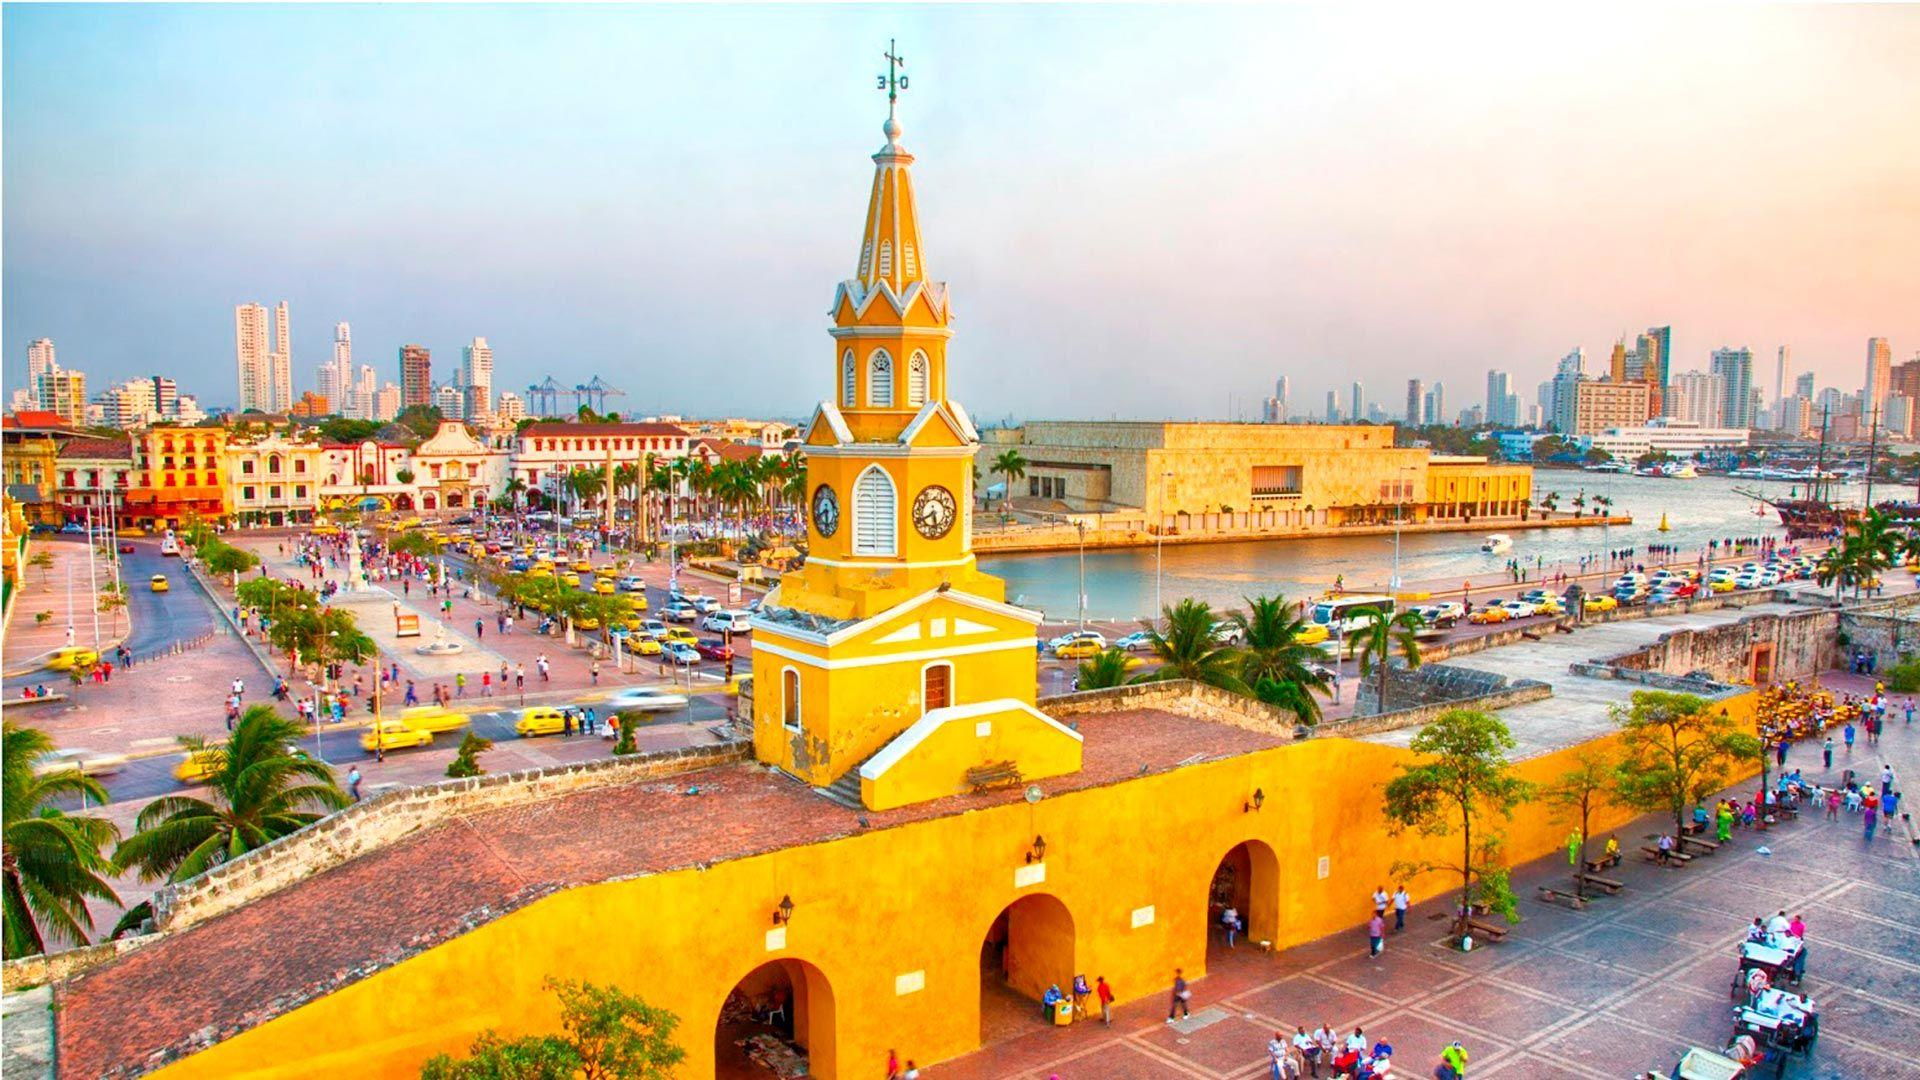 Colombia: Colombia Clásica 8d / 7n from 663 €